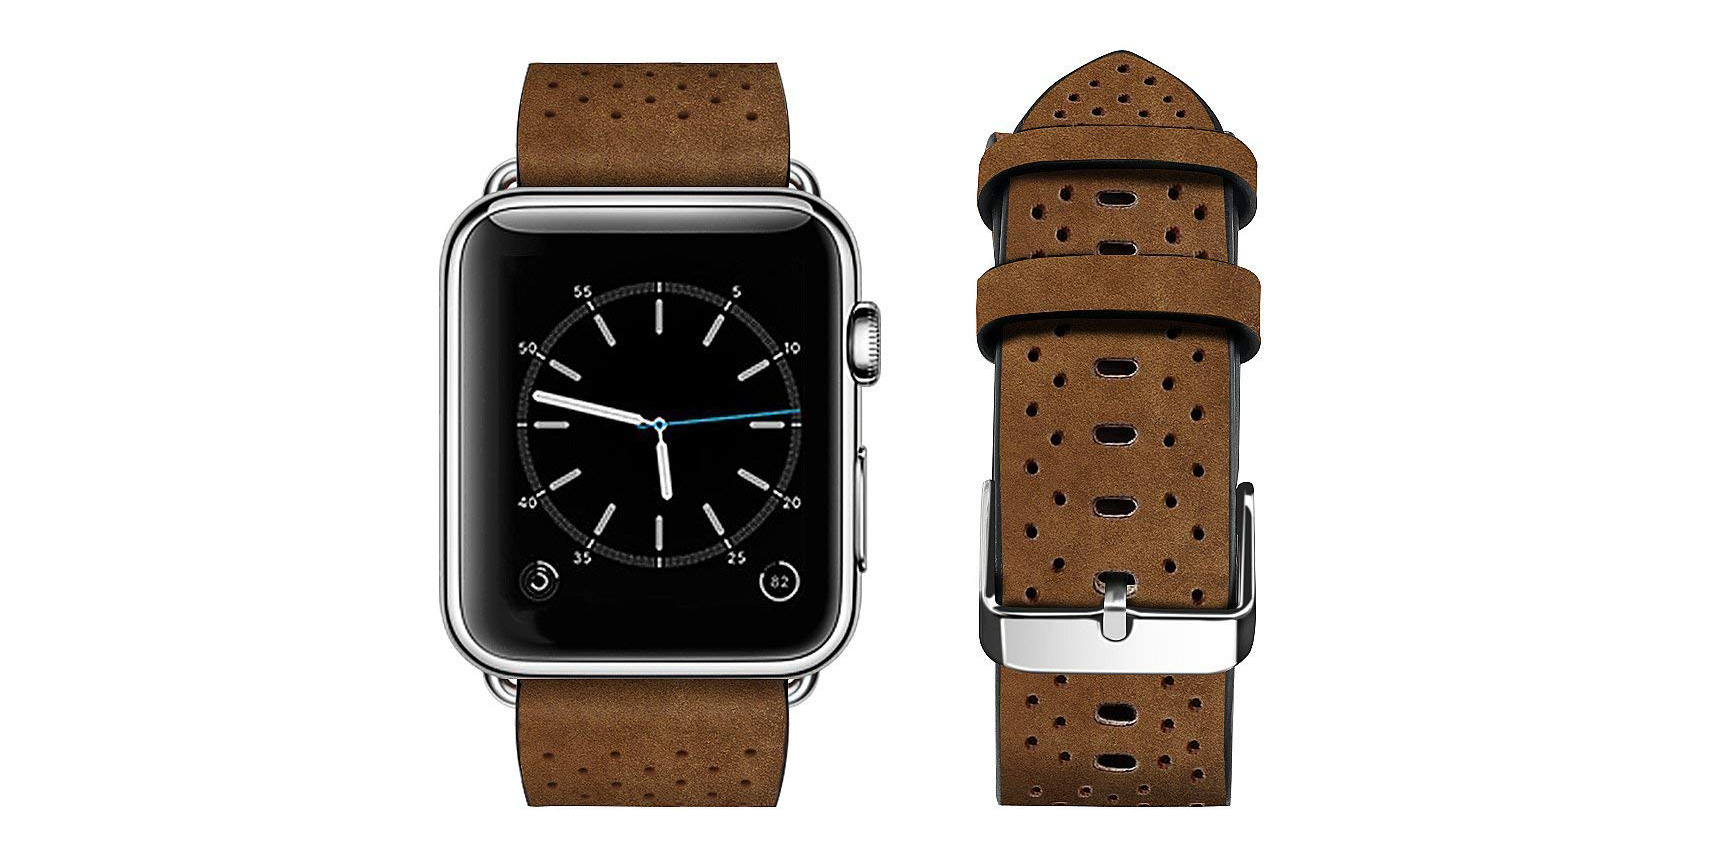 Give your Apple Watch a new leather band via Amazon for $3.50